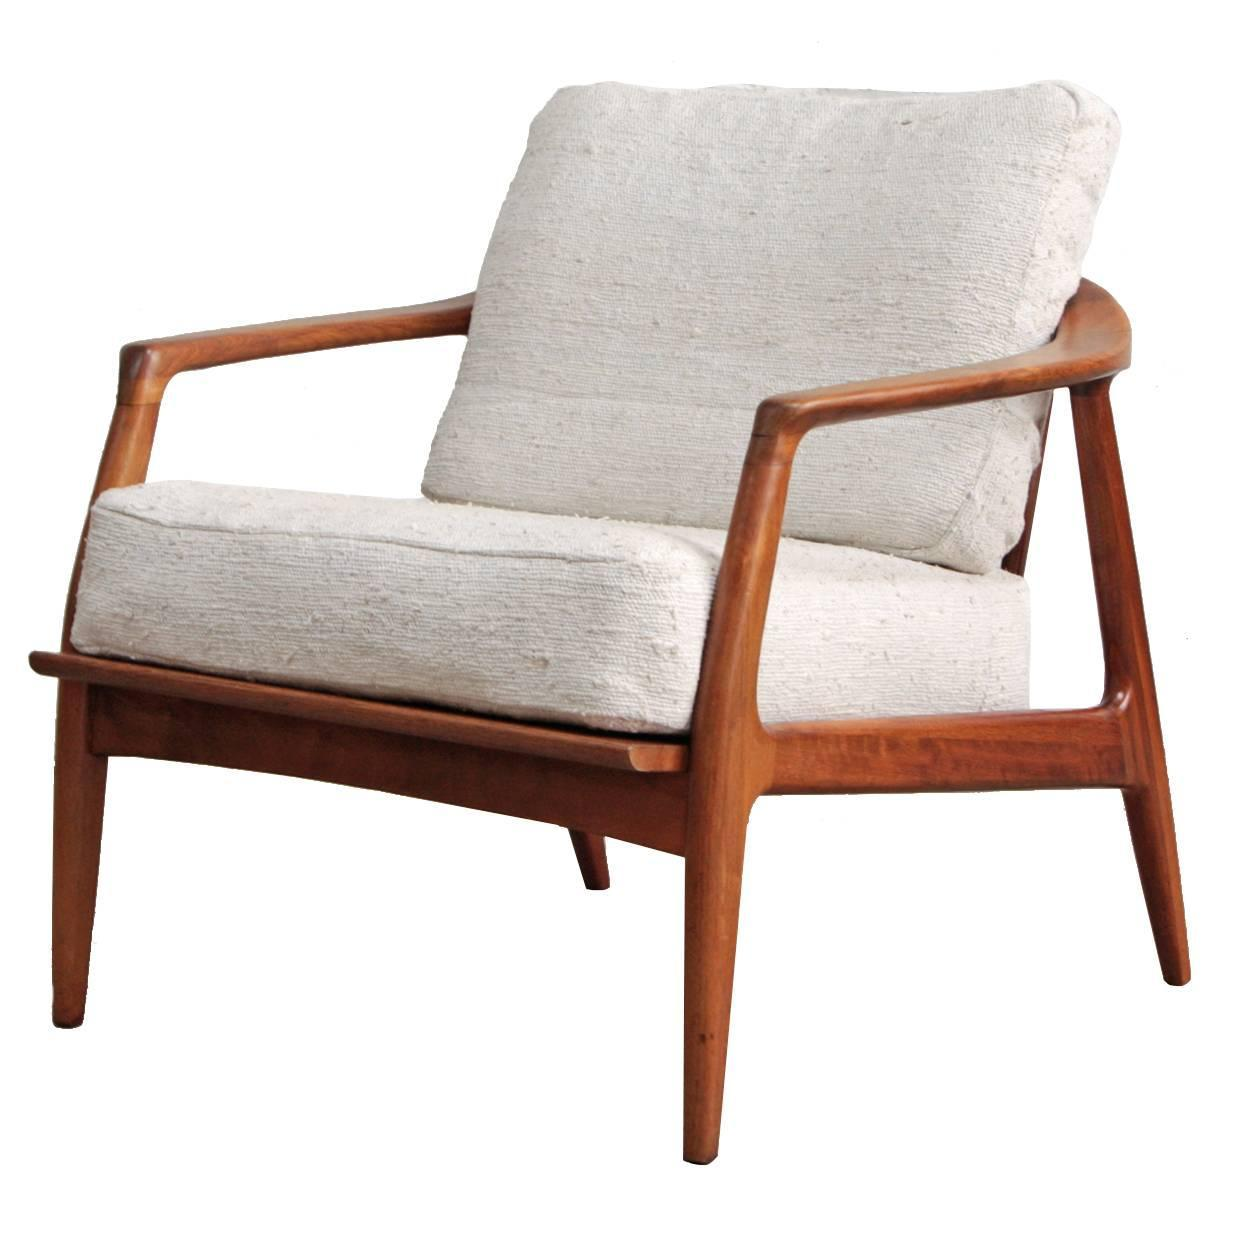 milo baughman chair office mechanism teak lounge at 1stdibs